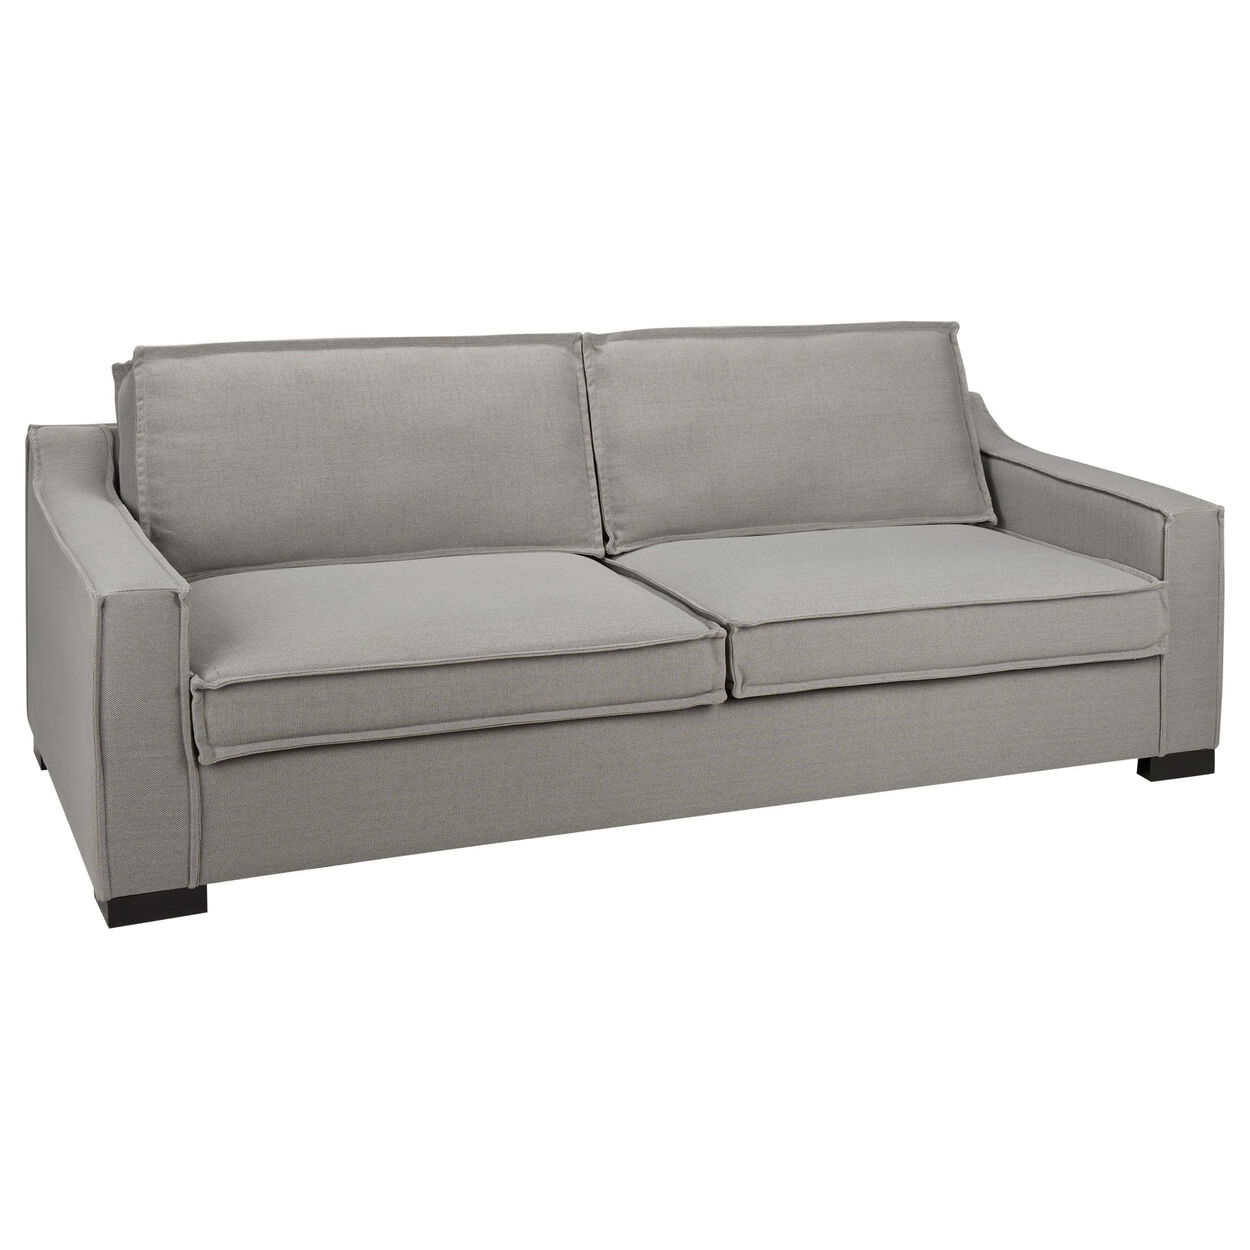 Cotton and Linen 3-Seat Sofa